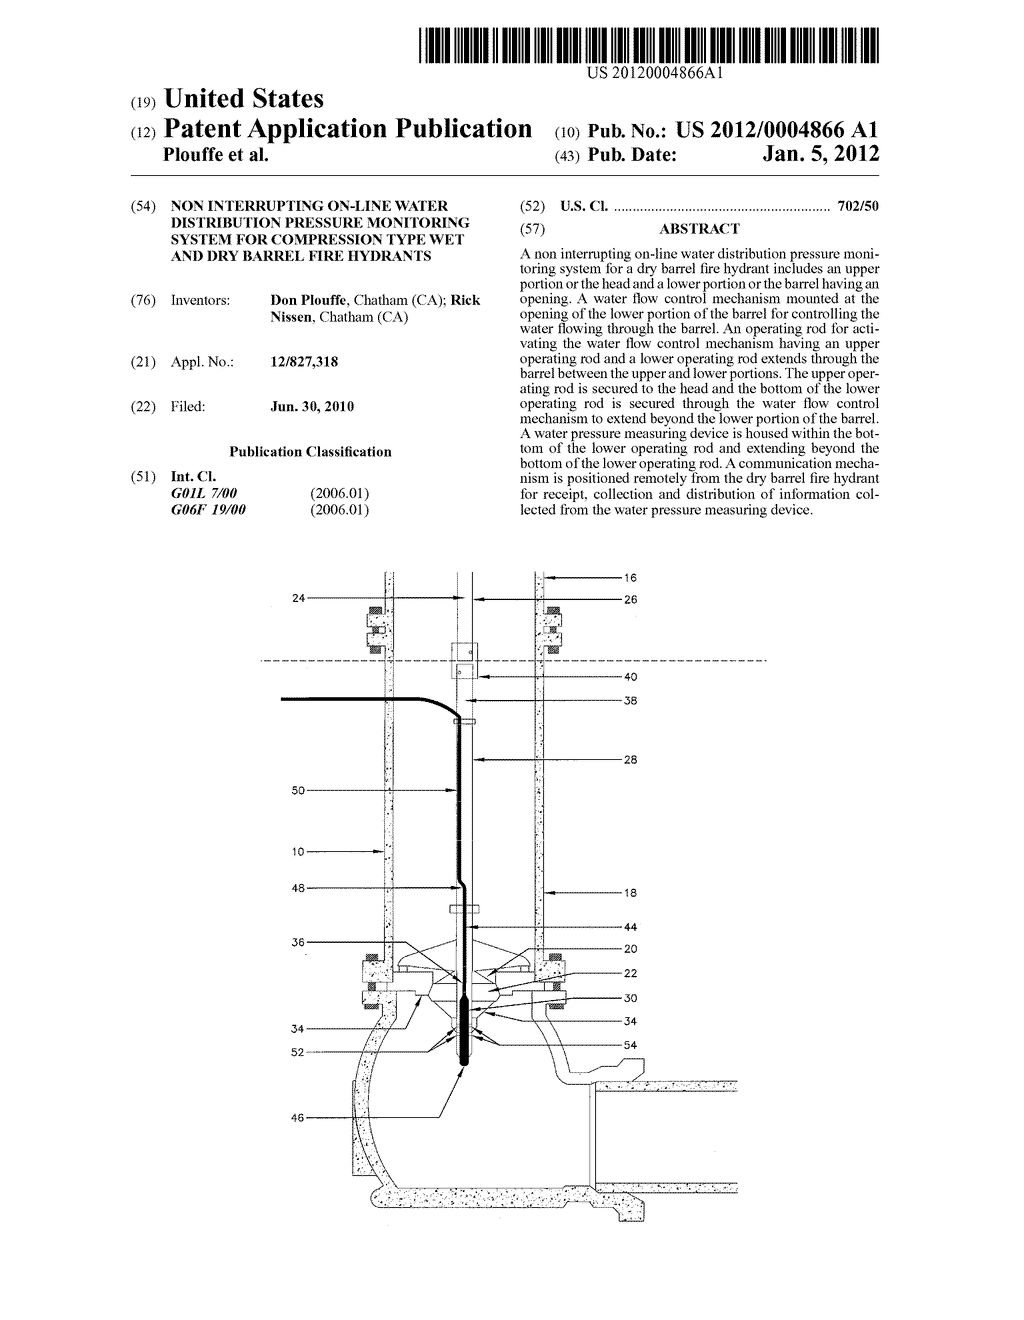 Non interrupting on line water distribution pressure monitoring non interrupting on line water distribution pressure monitoring system for compression type wet and dry barrel fire hydrants diagram schematic and image pooptronica